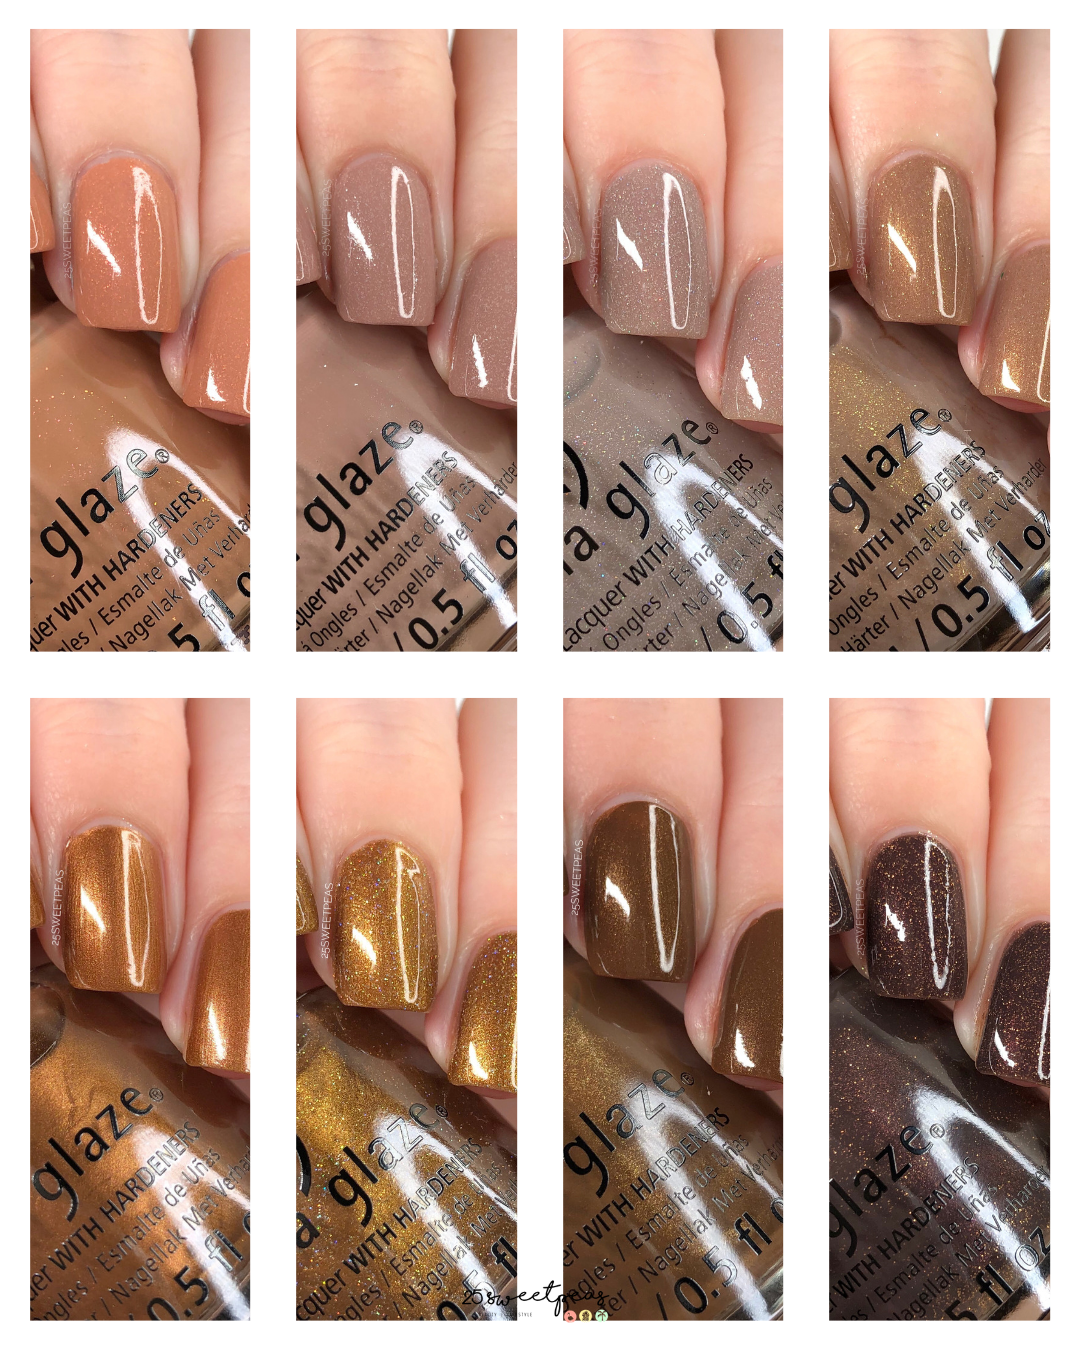 China Glaze Body & Sol Collection